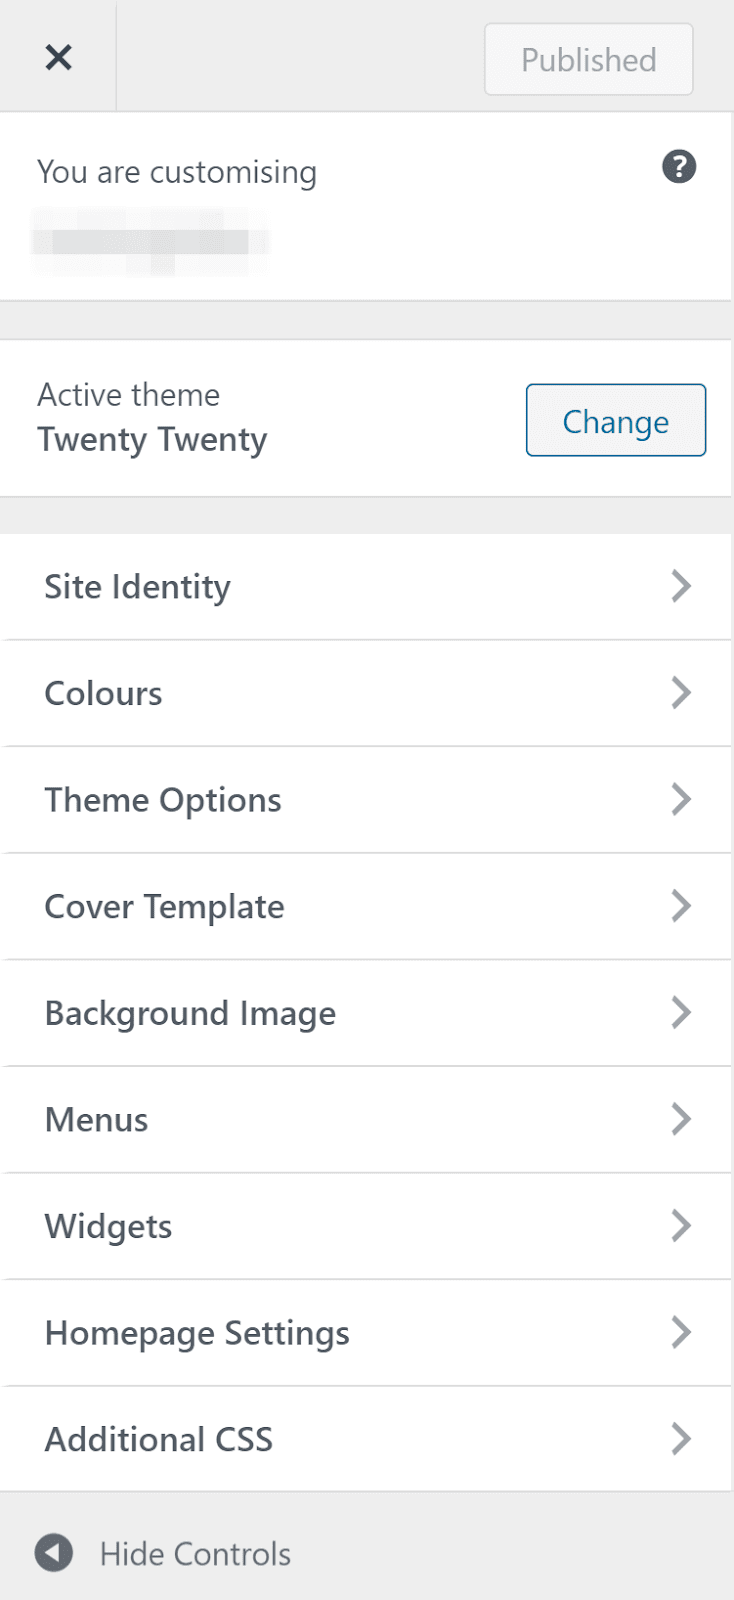 An image of the WordPress customization options on a default theme.